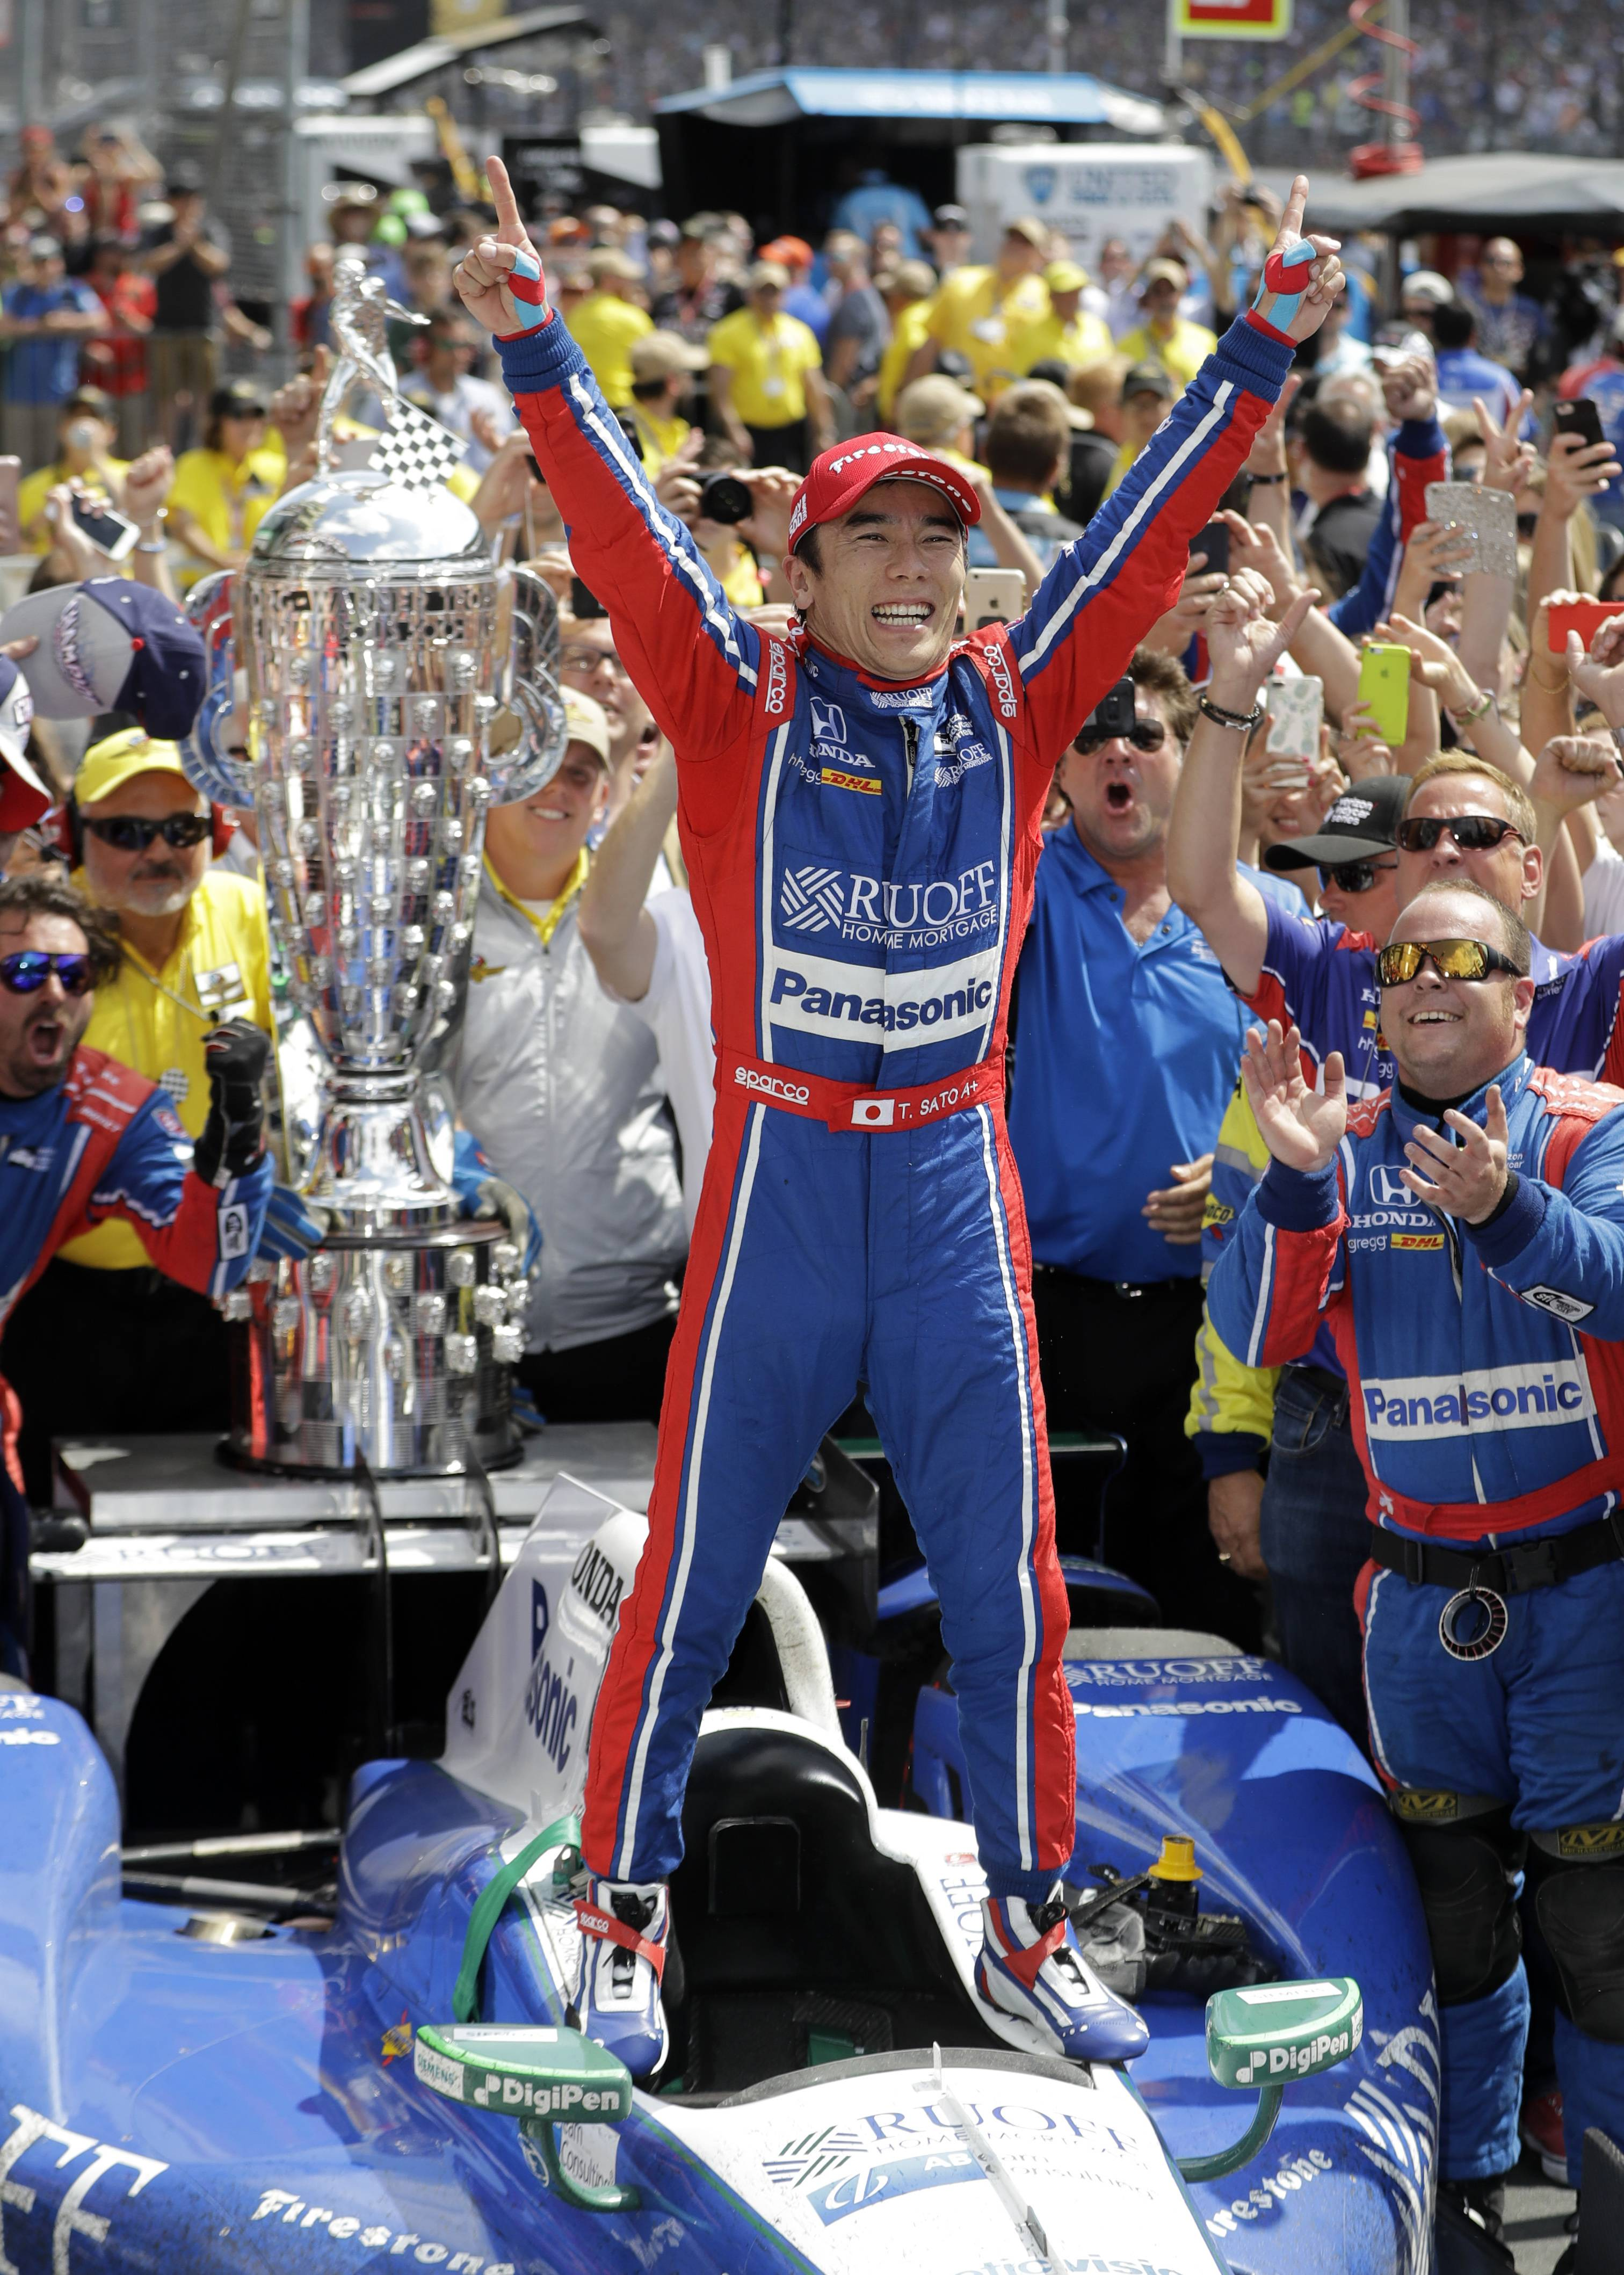 Takuma Sato, of Japan, celebrates after winning the Indianapolis 500 auto race at Indianapolis Motor Speedway, Sunday, May 28, 2017, in Indianapolis.